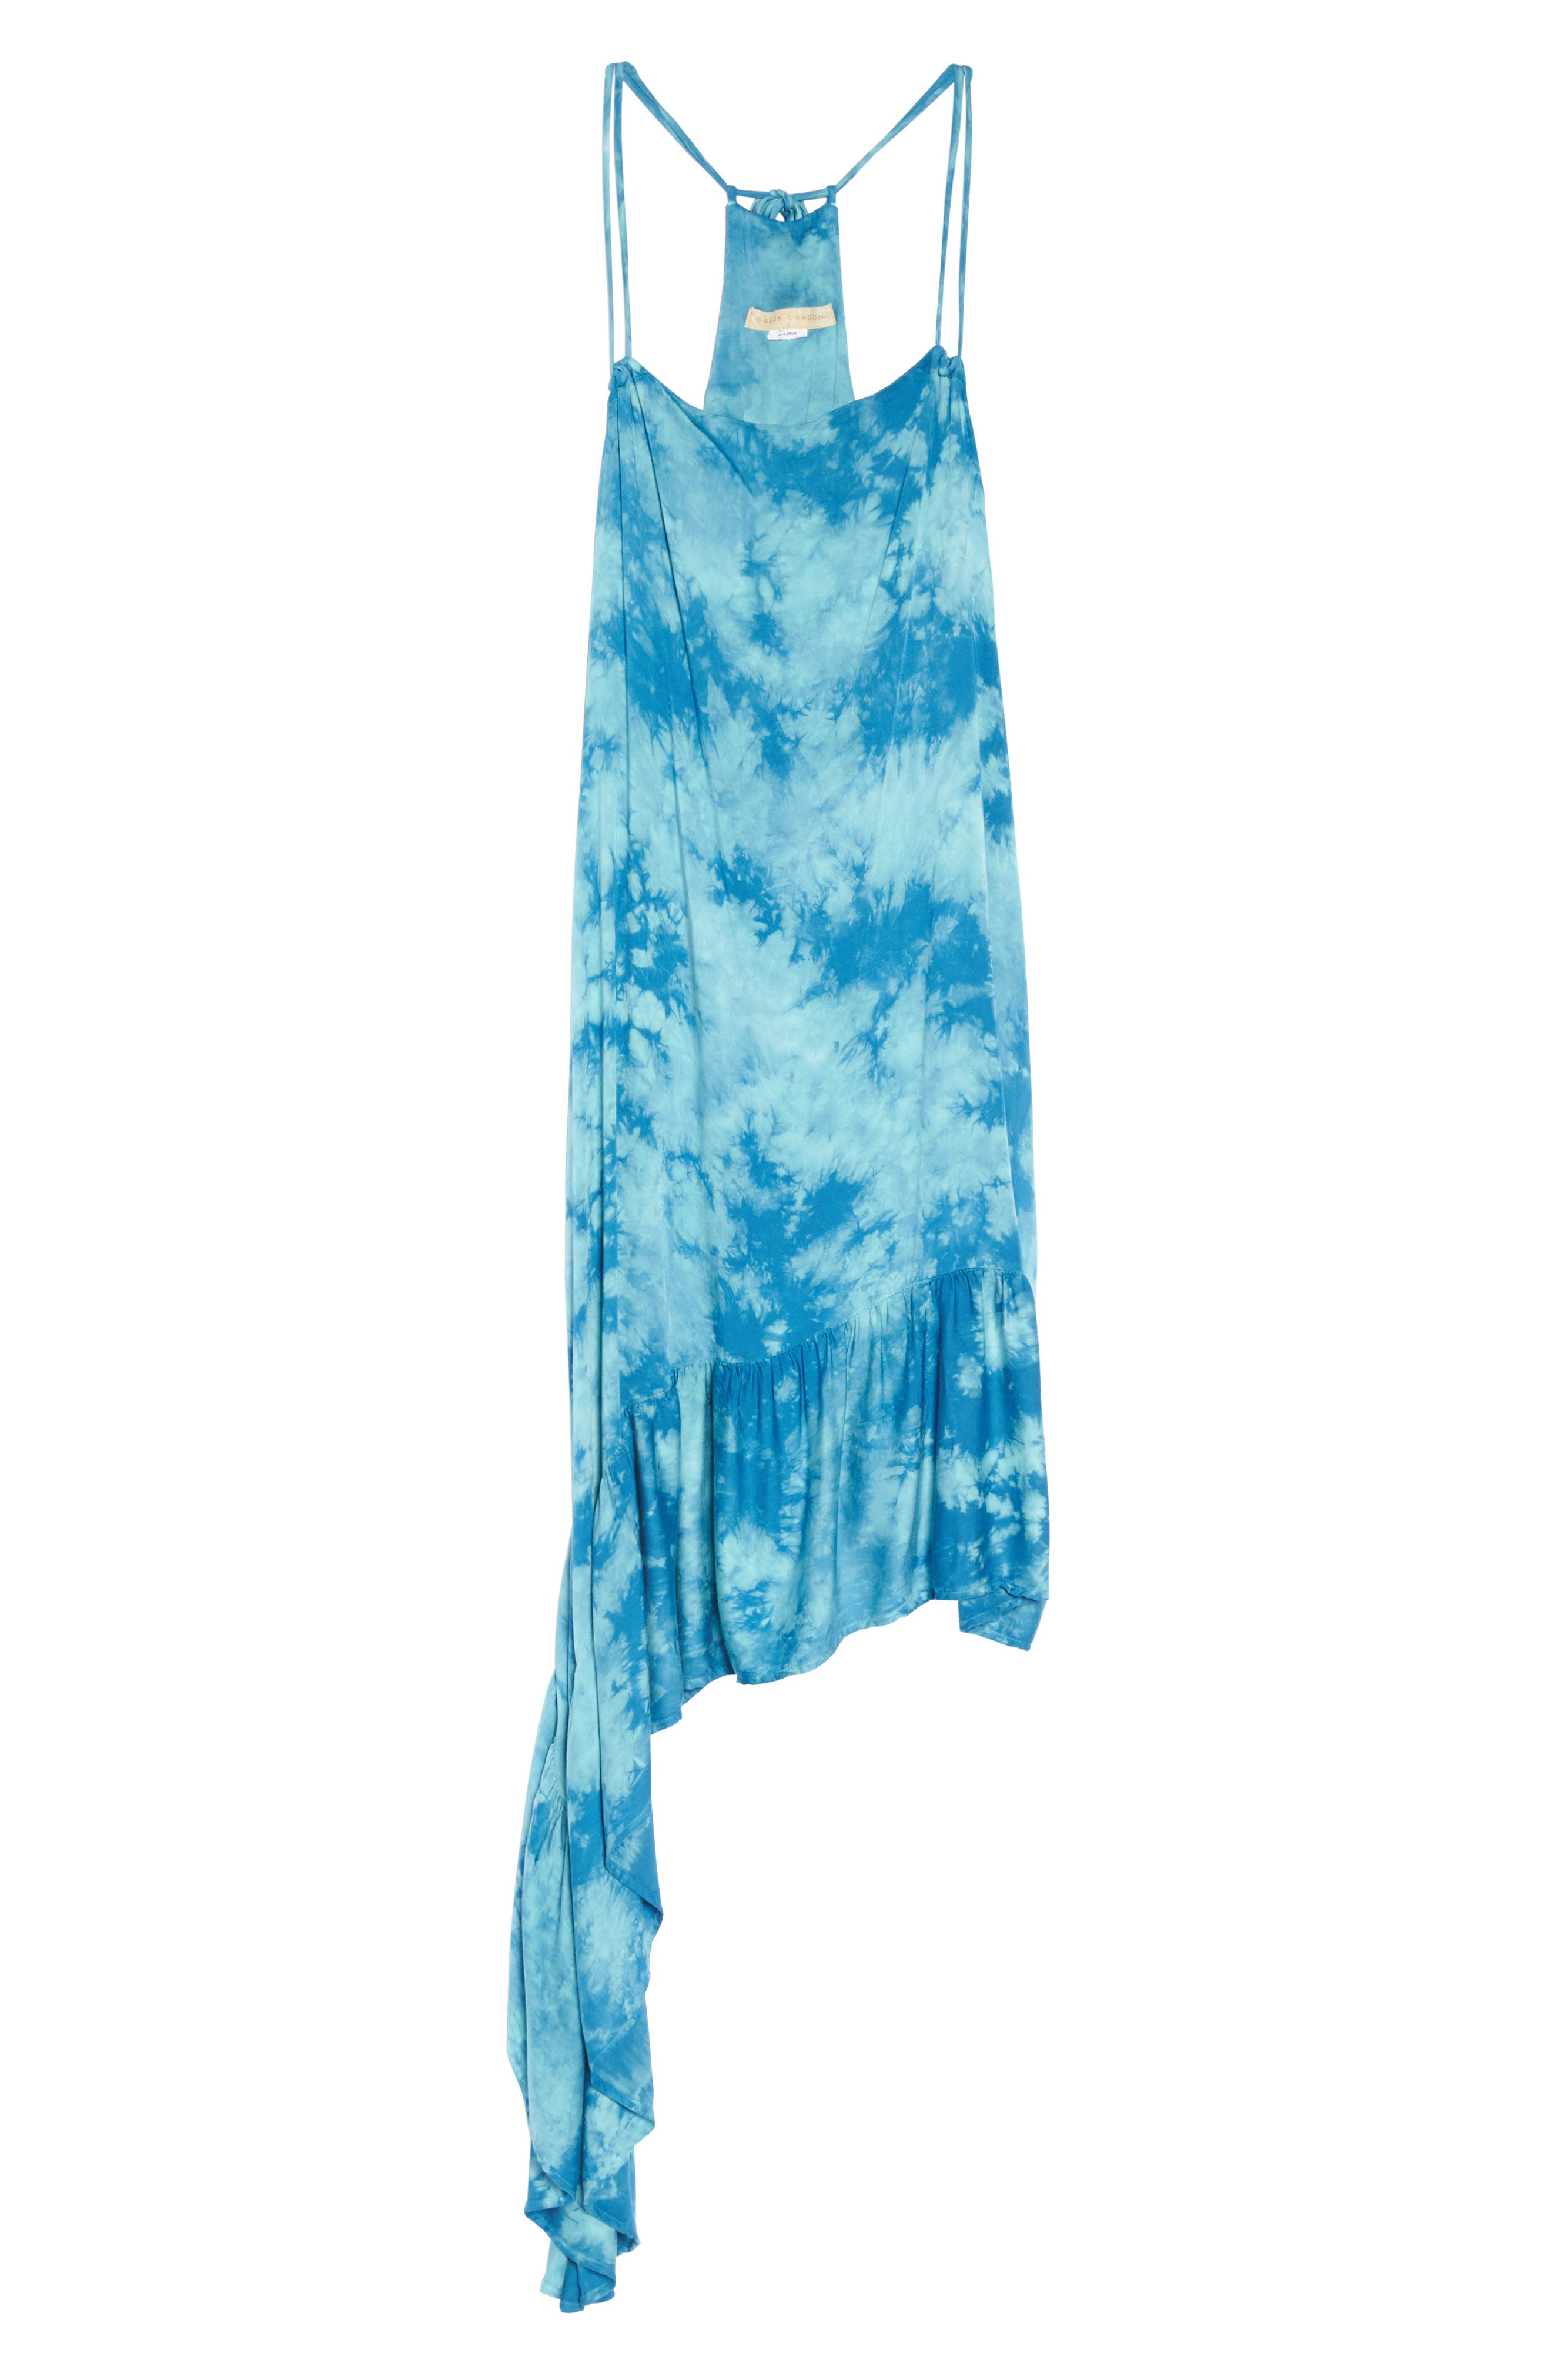 Crystal Forest Clementine Cover-Up Dress,                             Alternate thumbnail 6, color,                             401